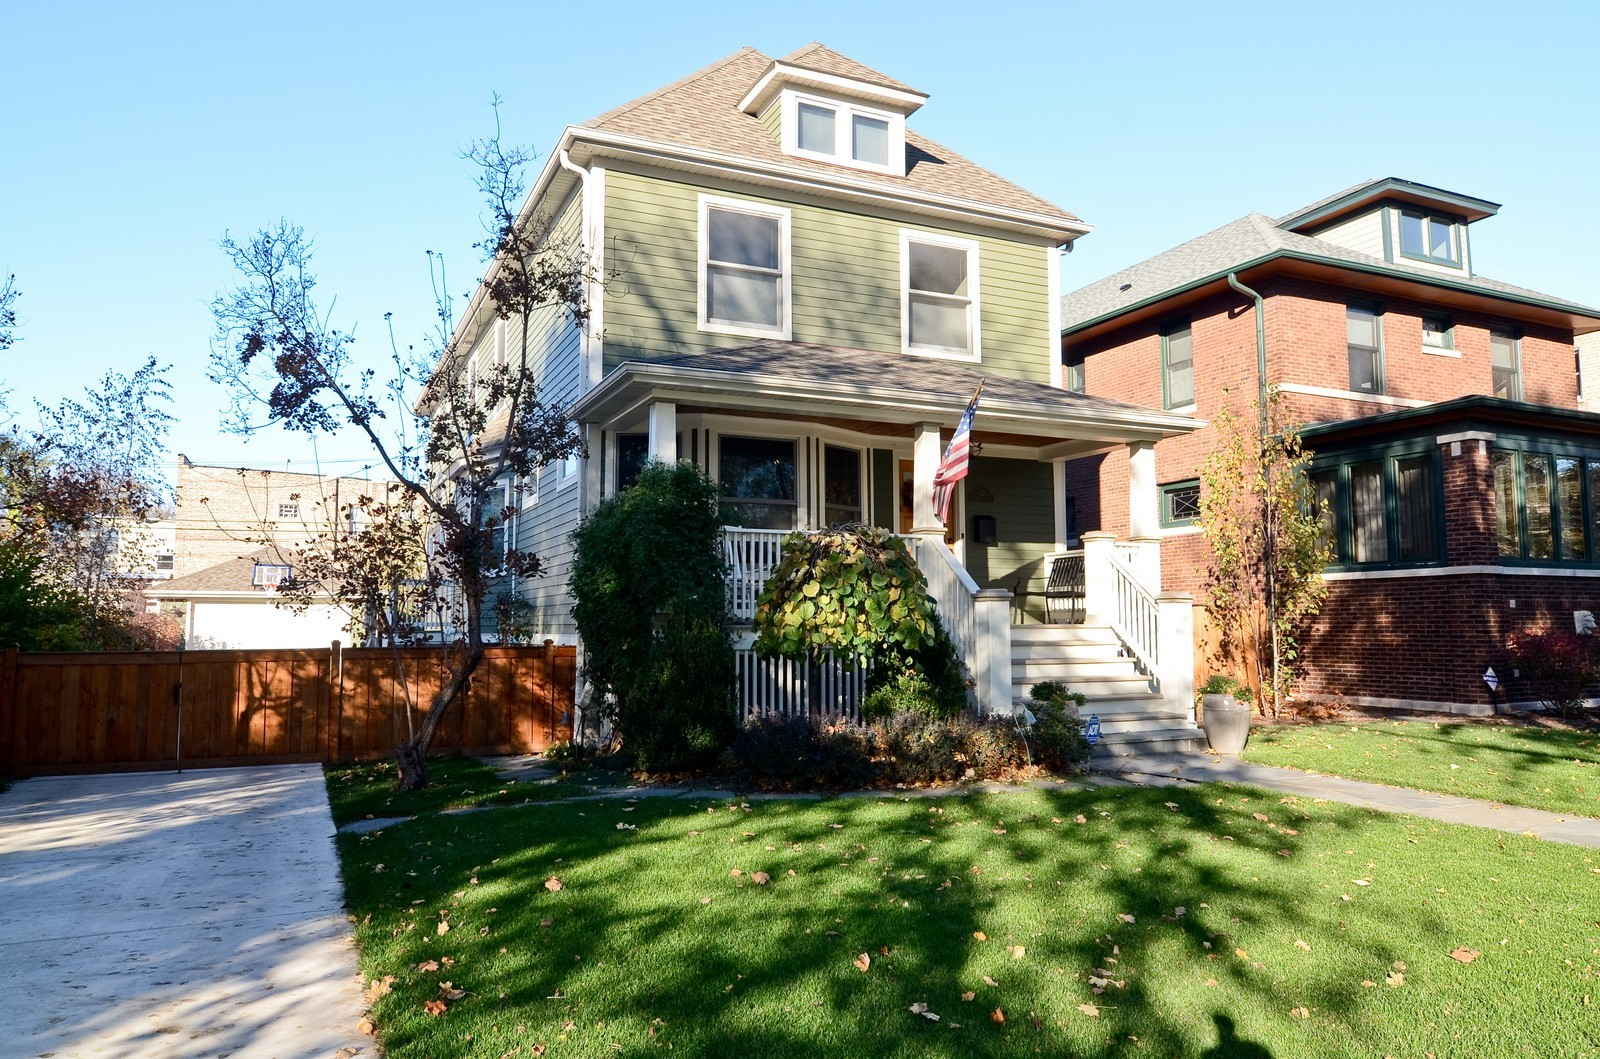 Real Estate Photography - 4332 N Keeler, Chicago, IL, 60641 - Front View